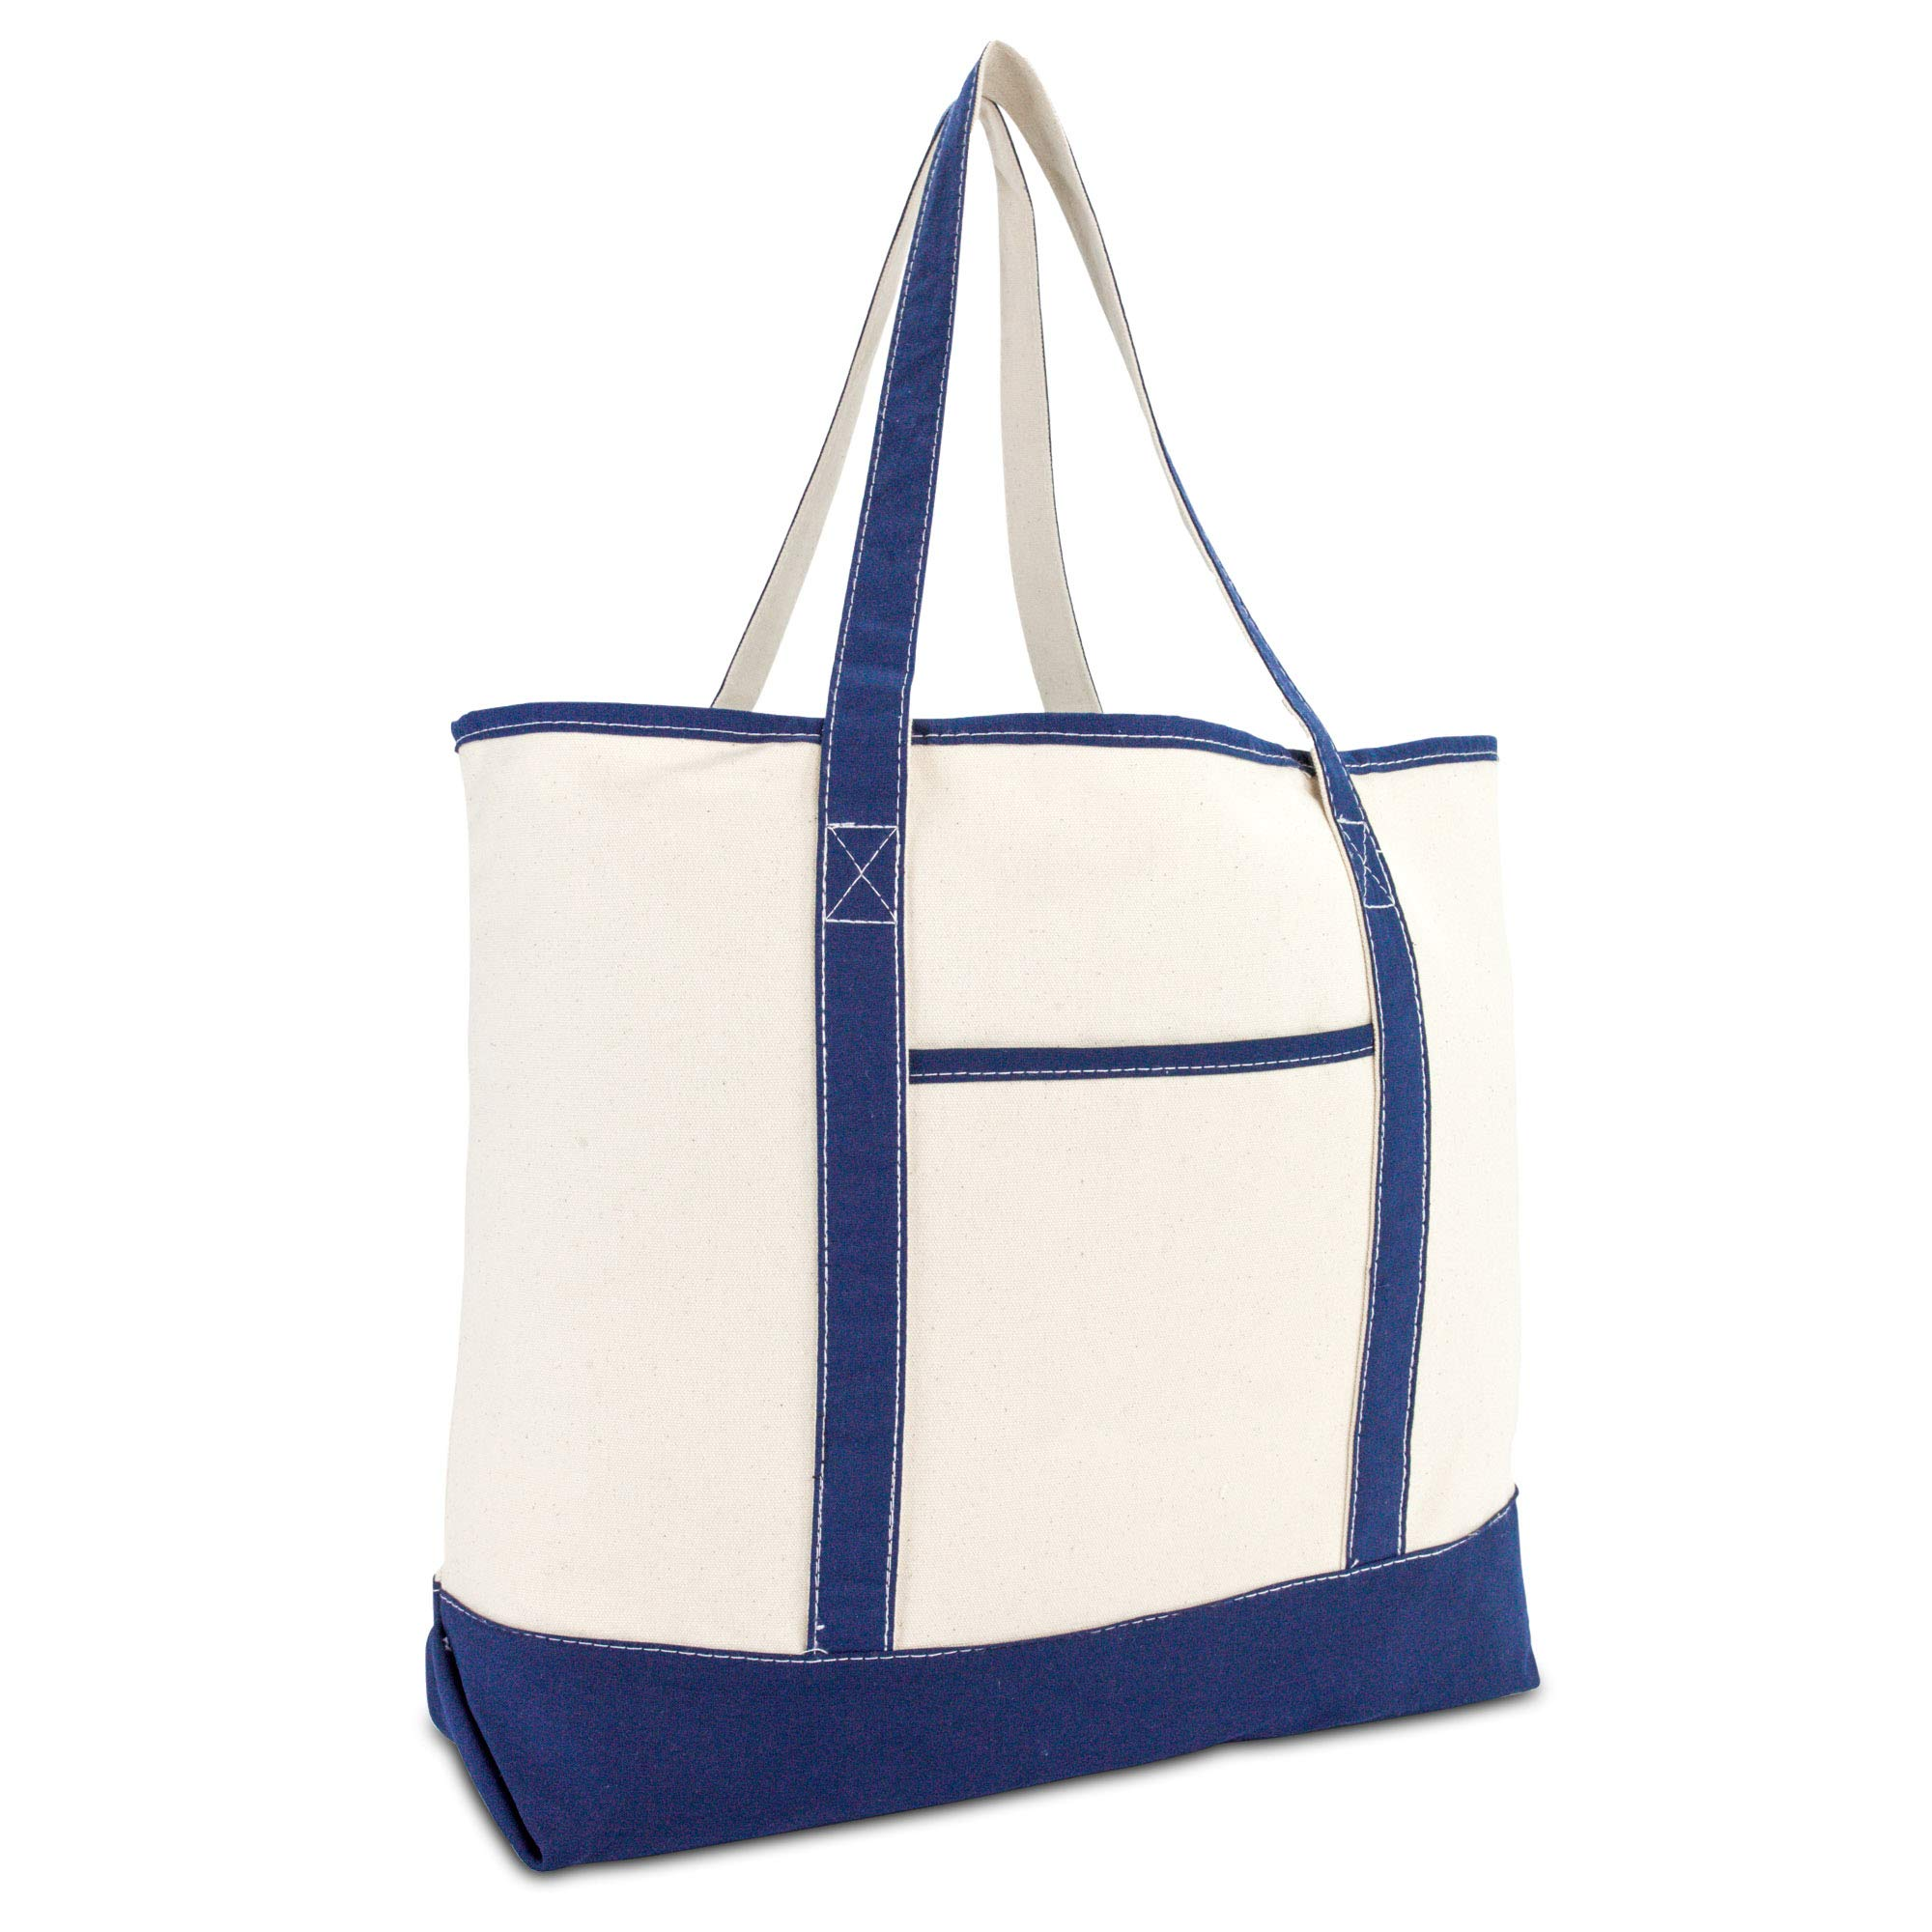 DALIX 22'' Extra Large Shopping Tote Bag w Outer Pocket in Navy Blue and Natural